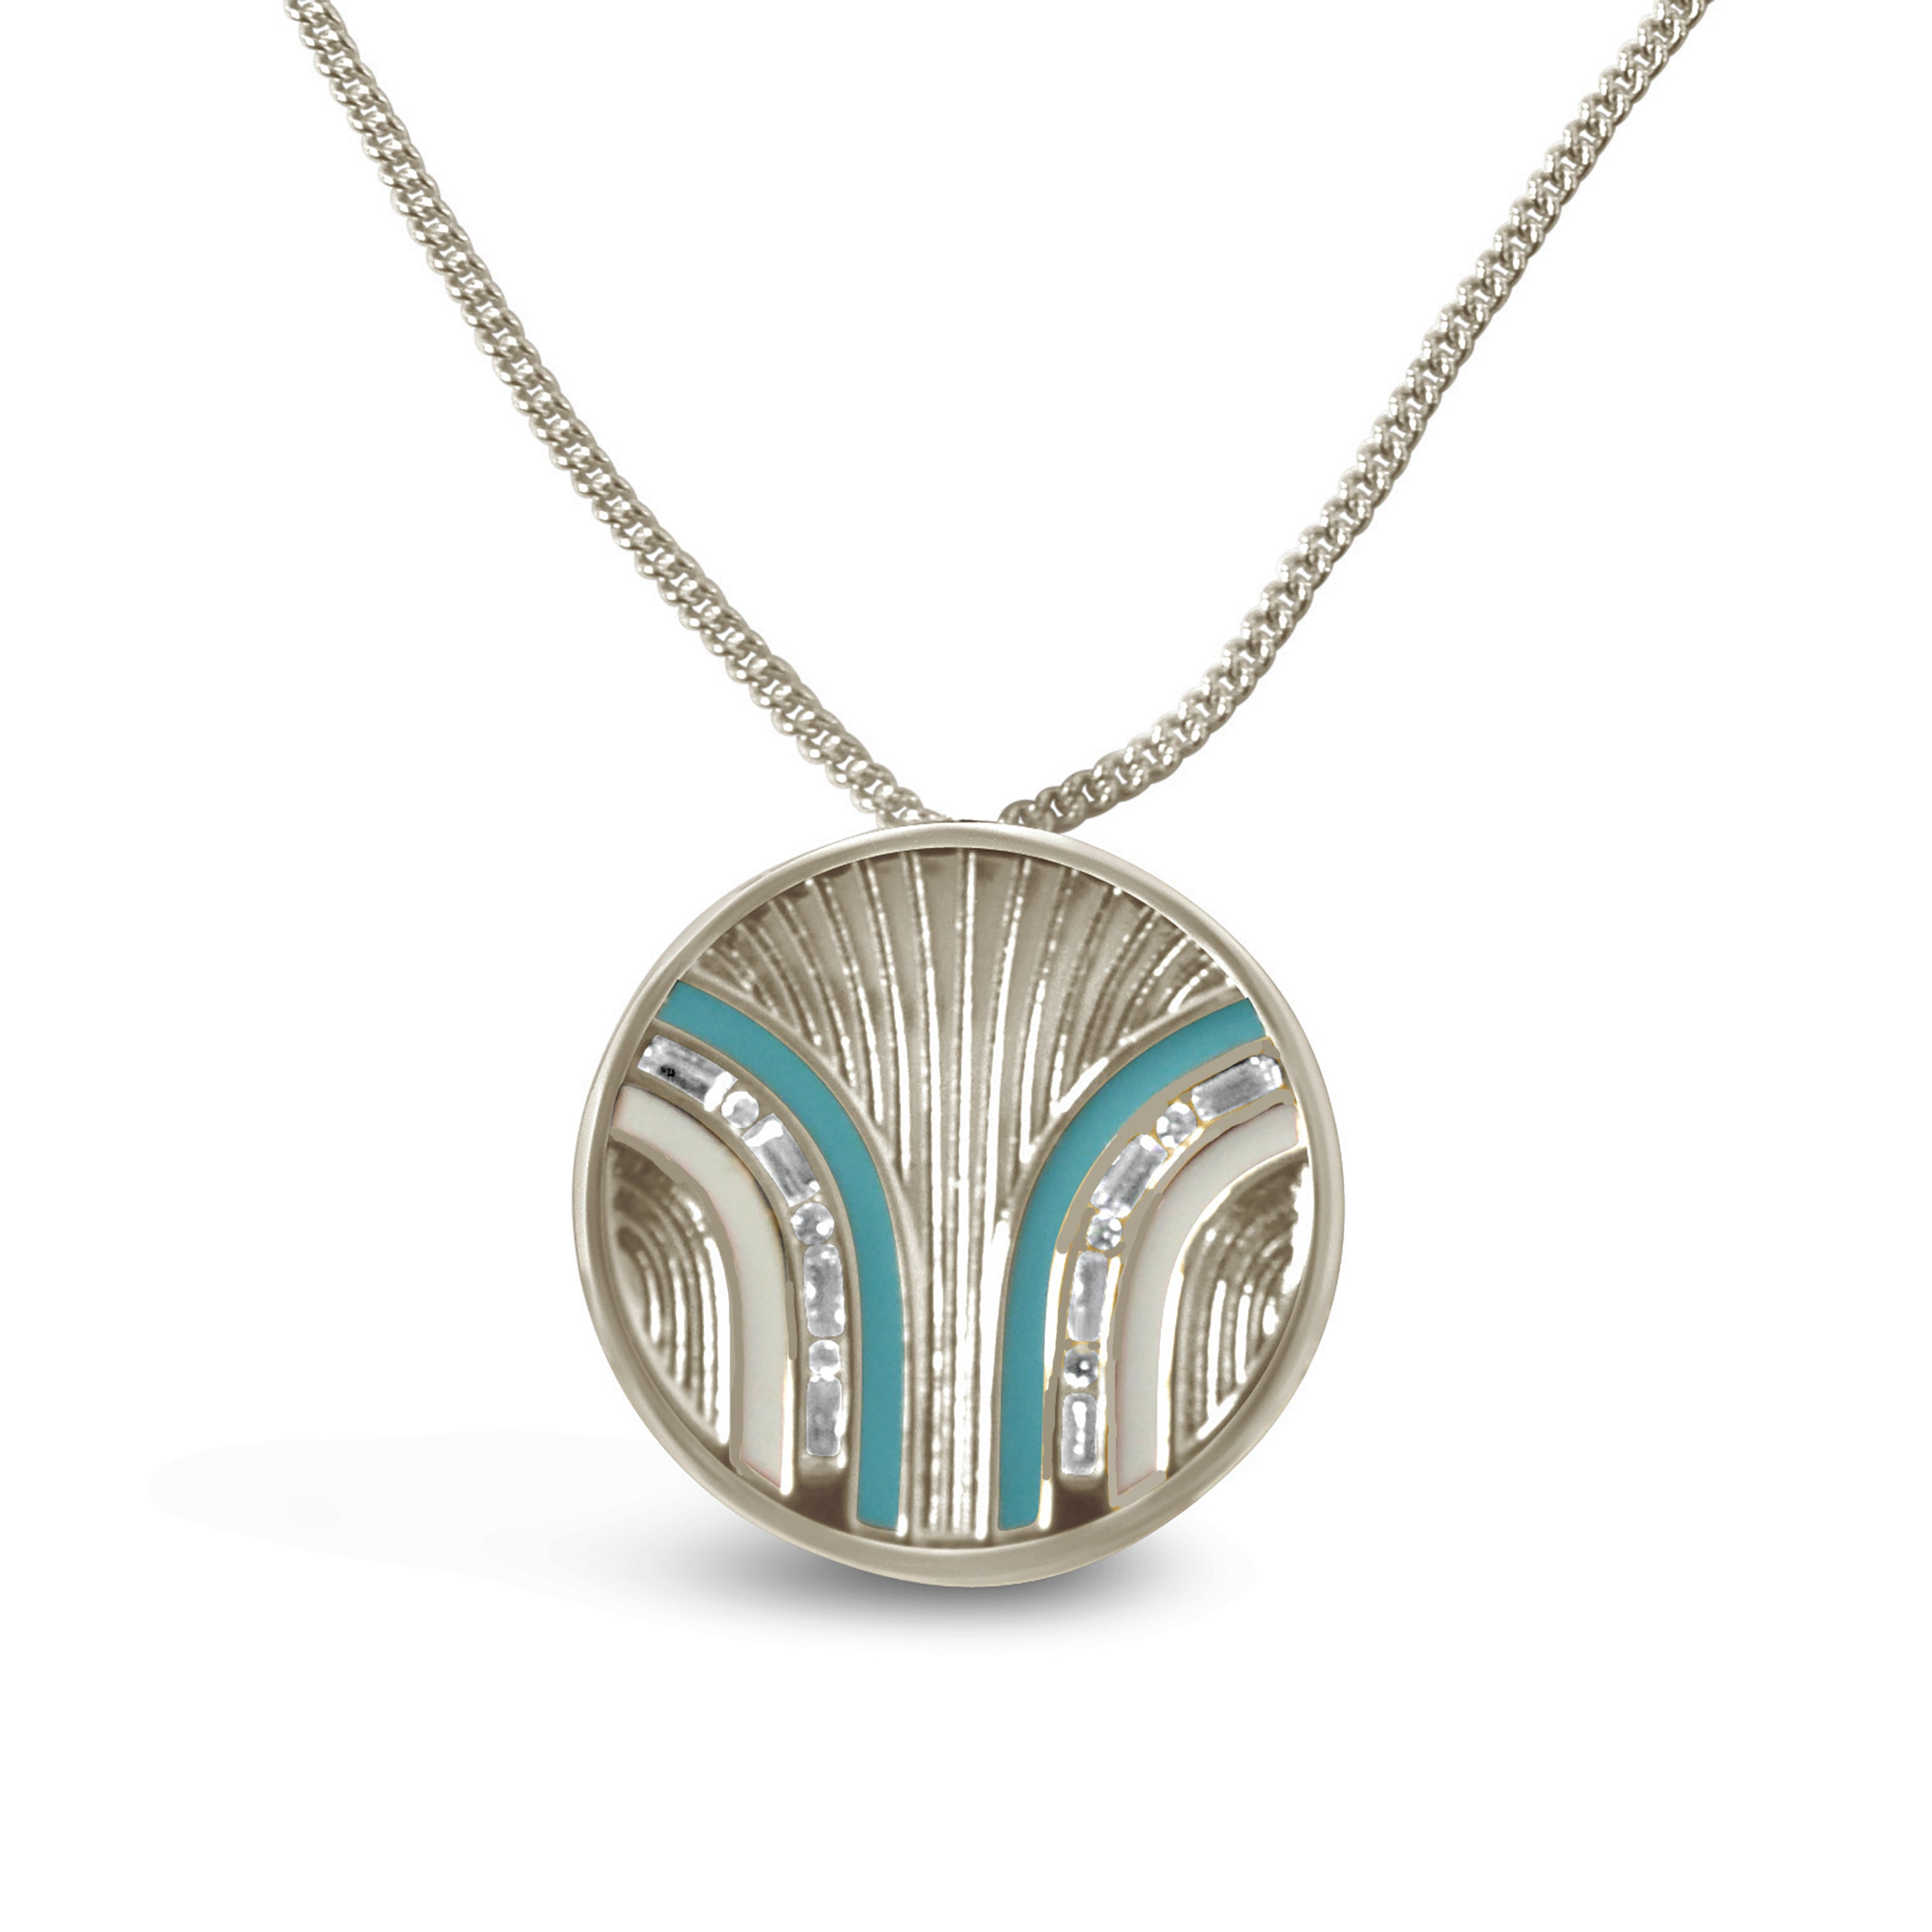 South Beach Coin Necklace - Turquoise/White